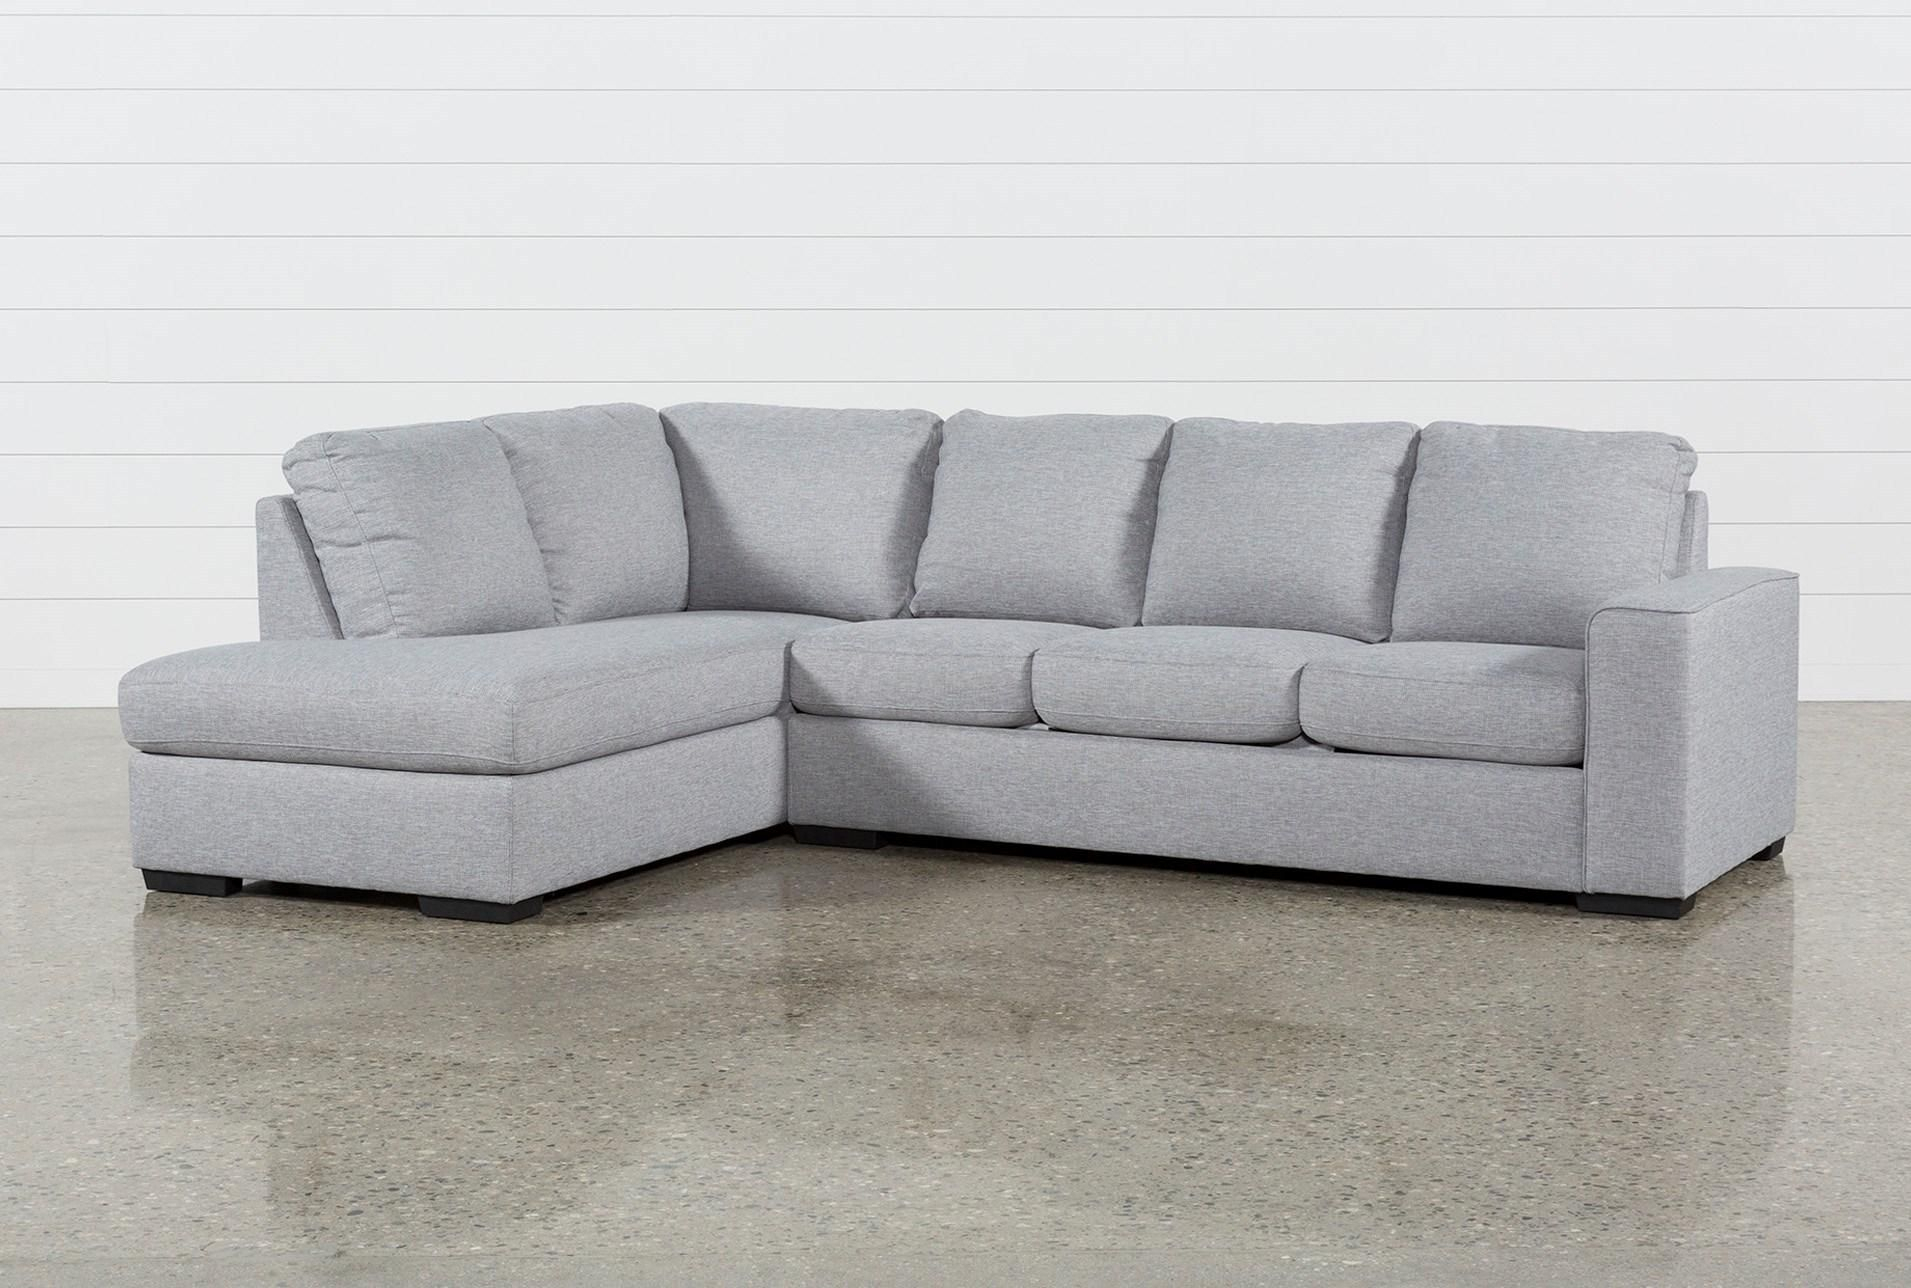 Lucy Grey 2 Piece Sectional W/laf Chaise In 2018 | Condo | Pinterest With Regard To Lucy Grey Sofa Chairs (Image 11 of 25)